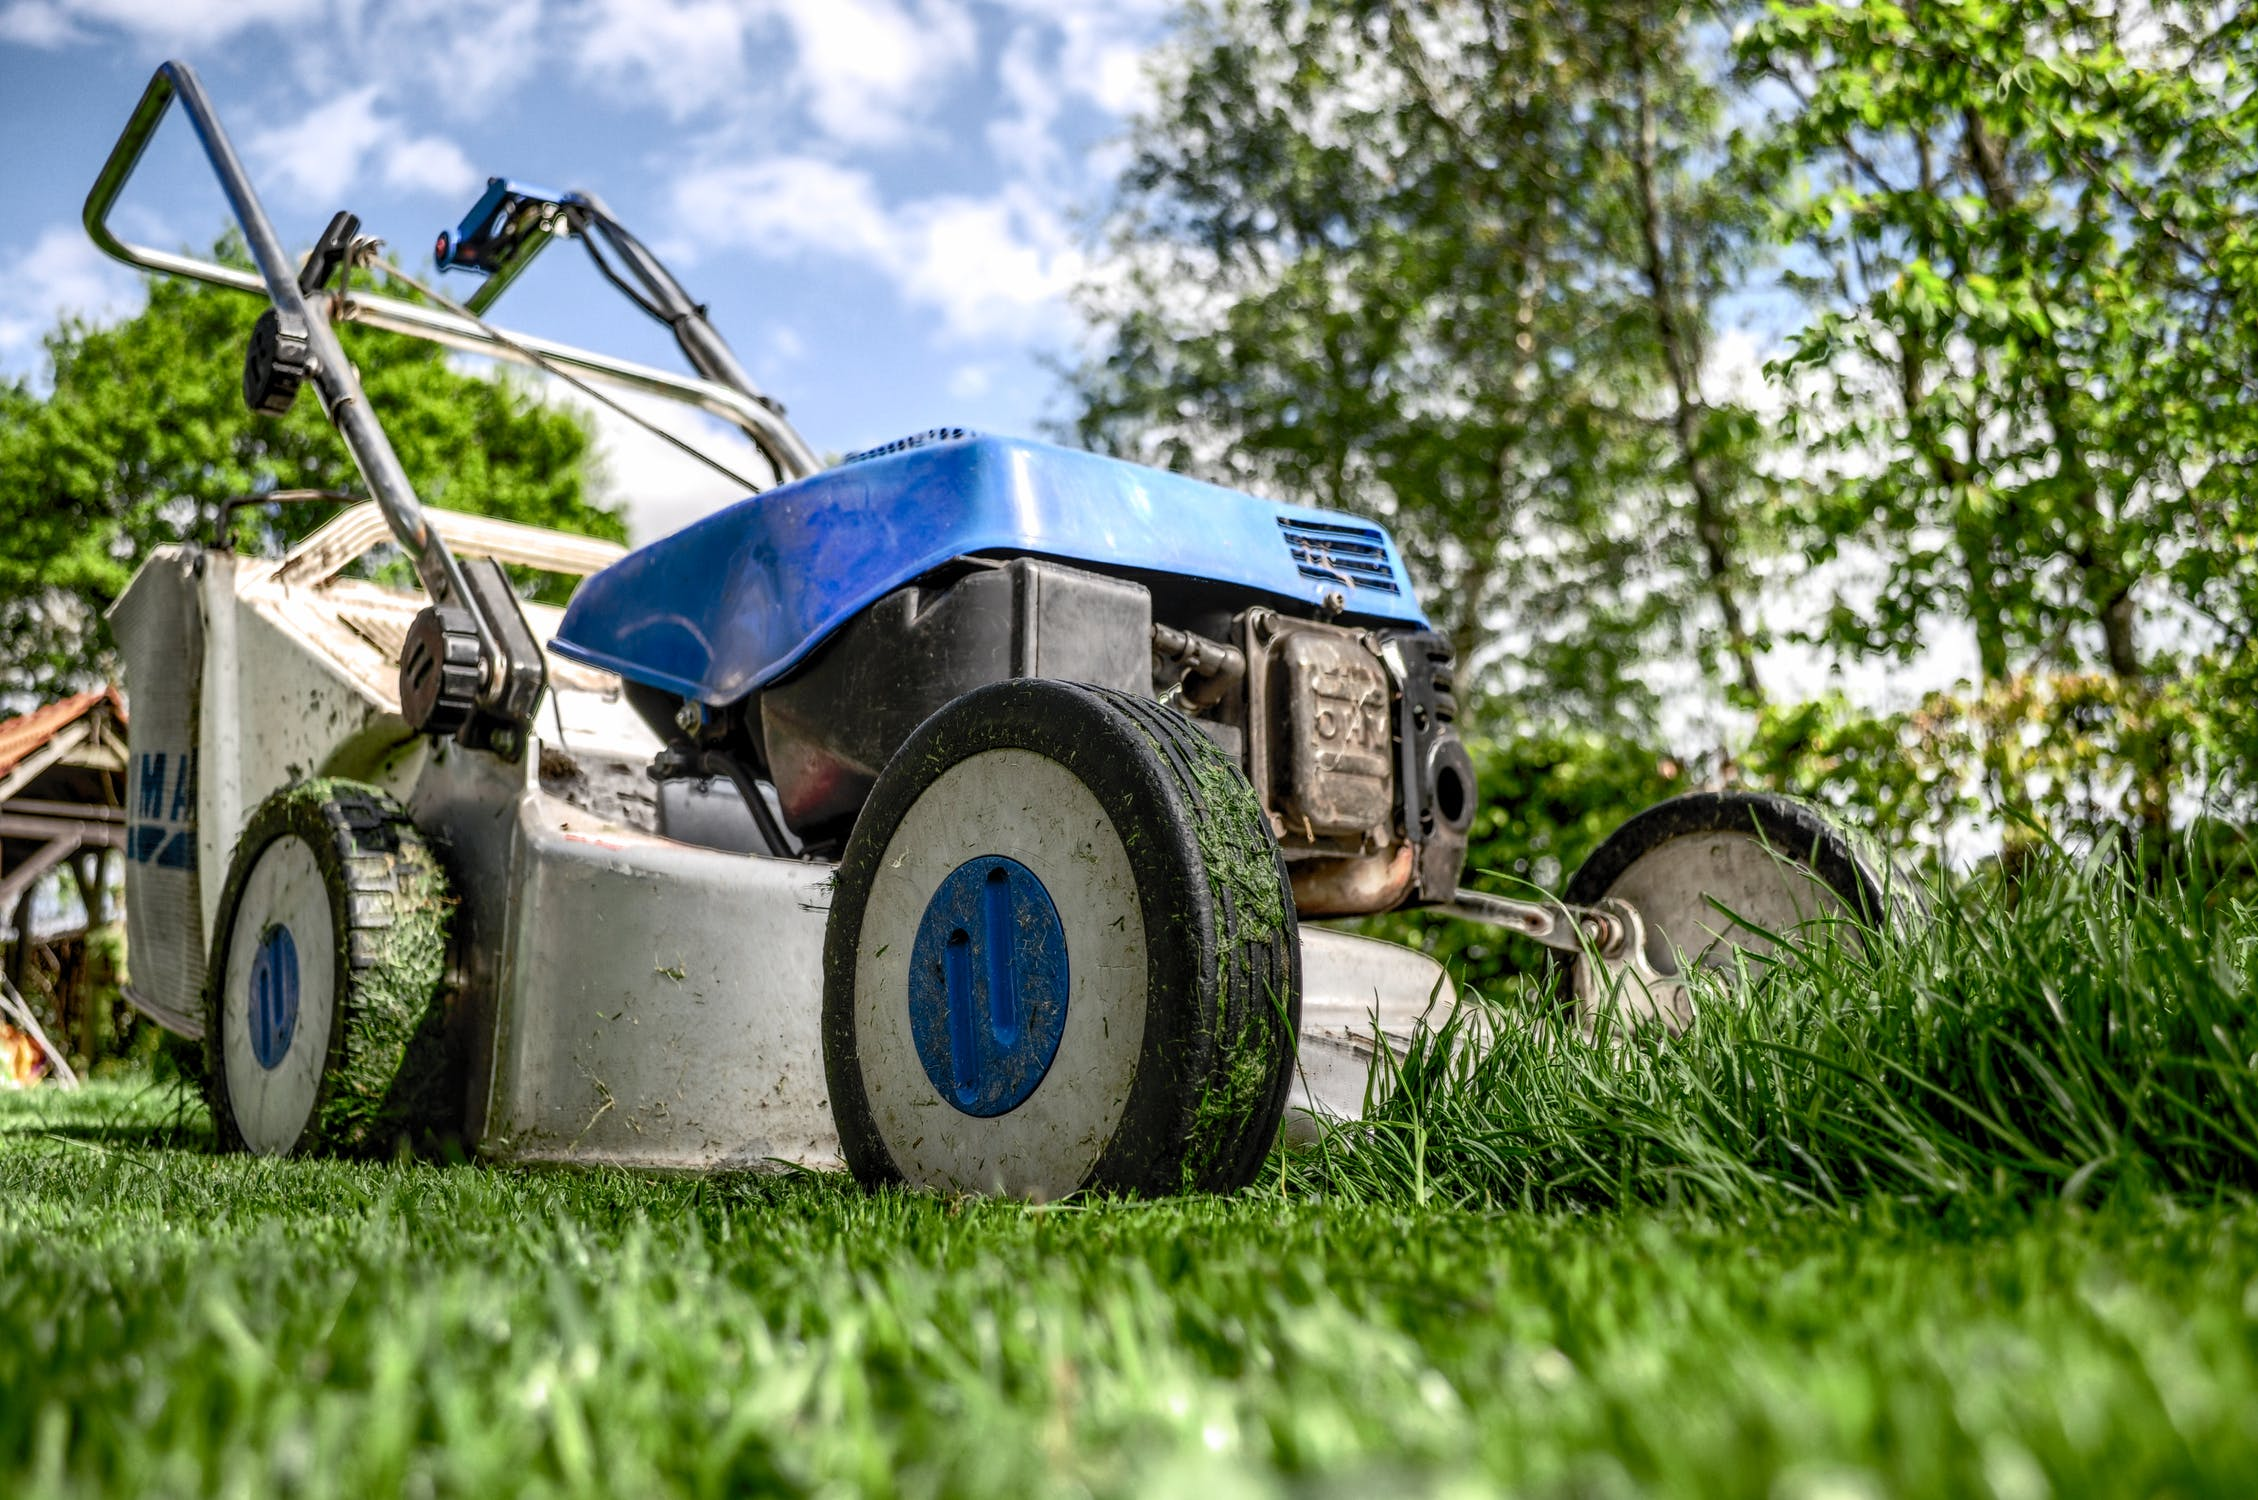 How to Cut Your Overgrown Lawn?